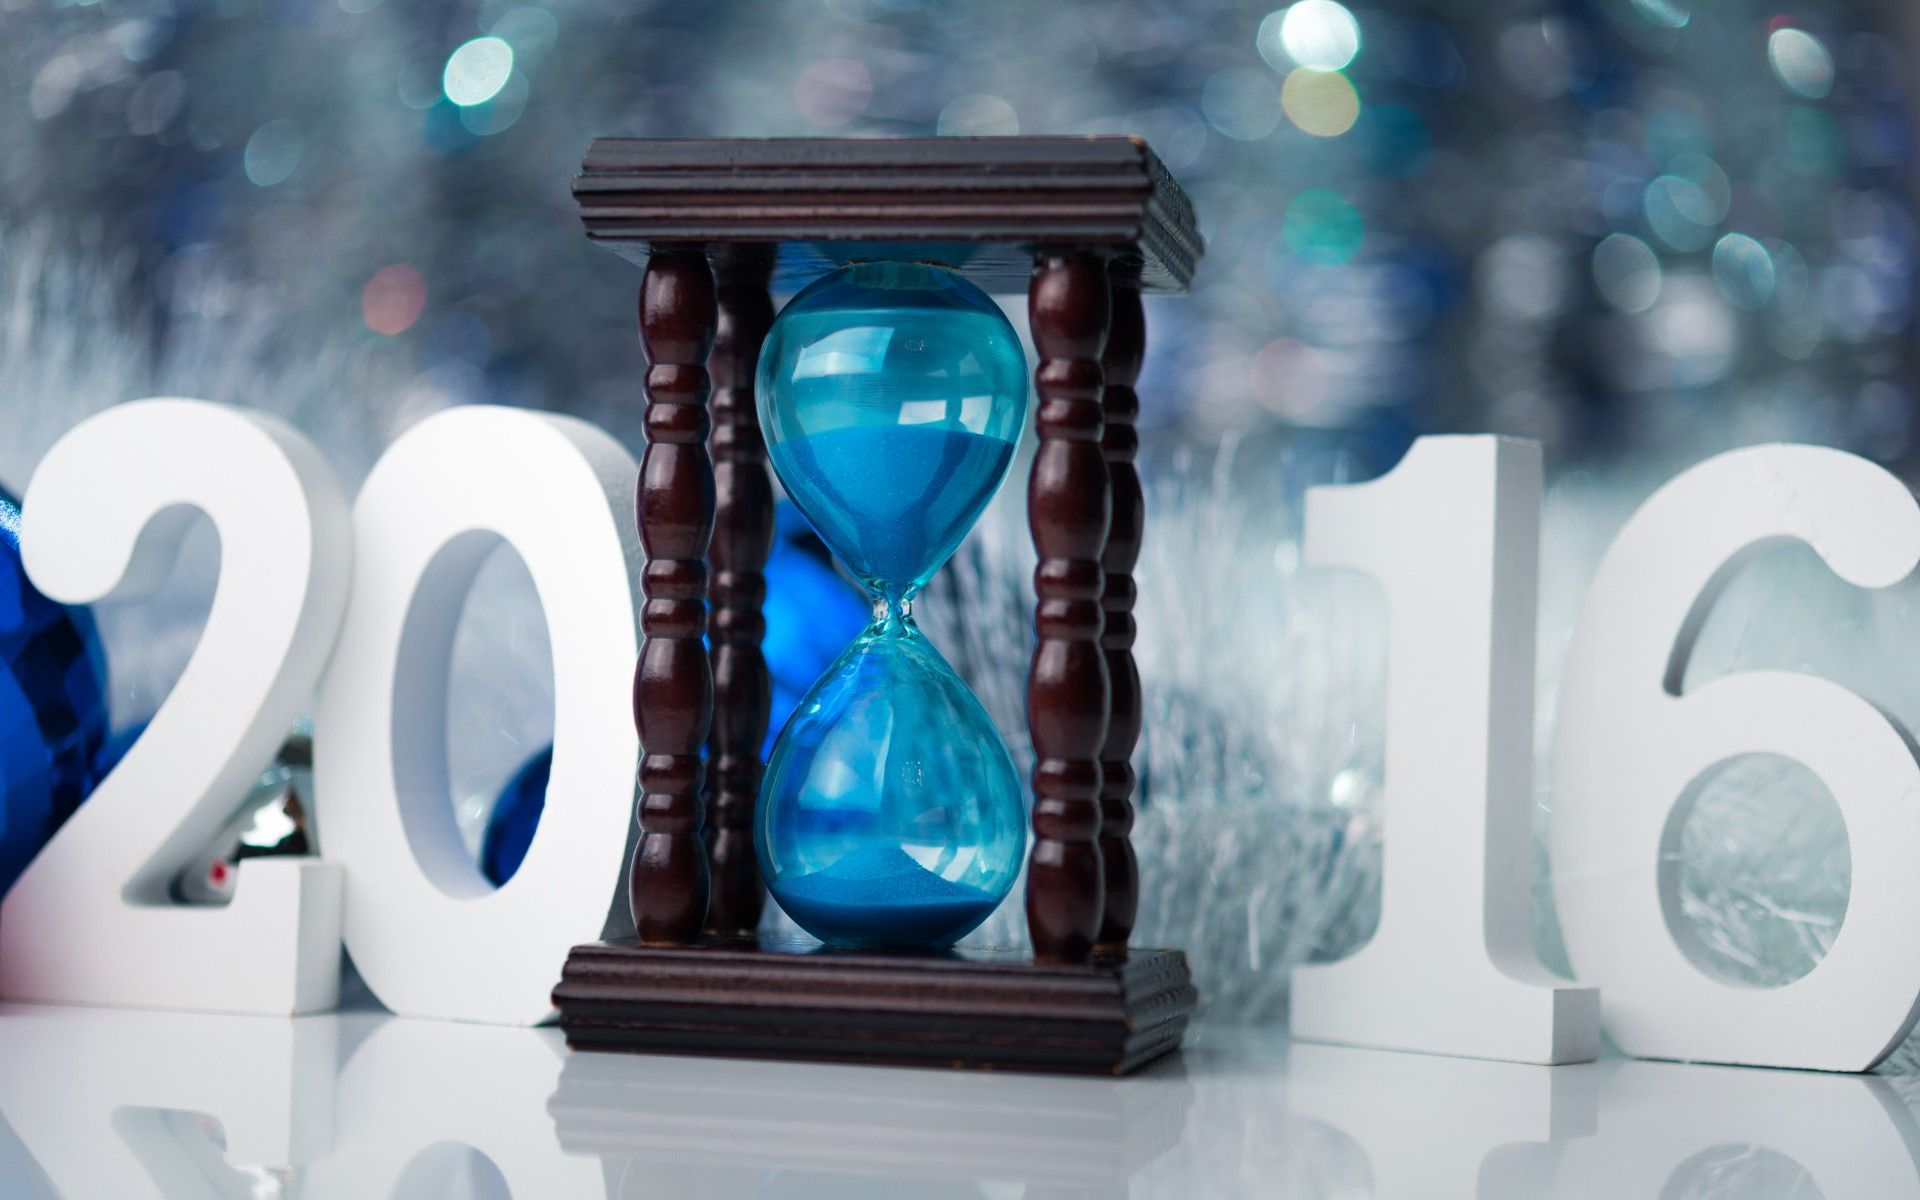 Blue hourglass - The New Year 2016 is here. Happy New Year!